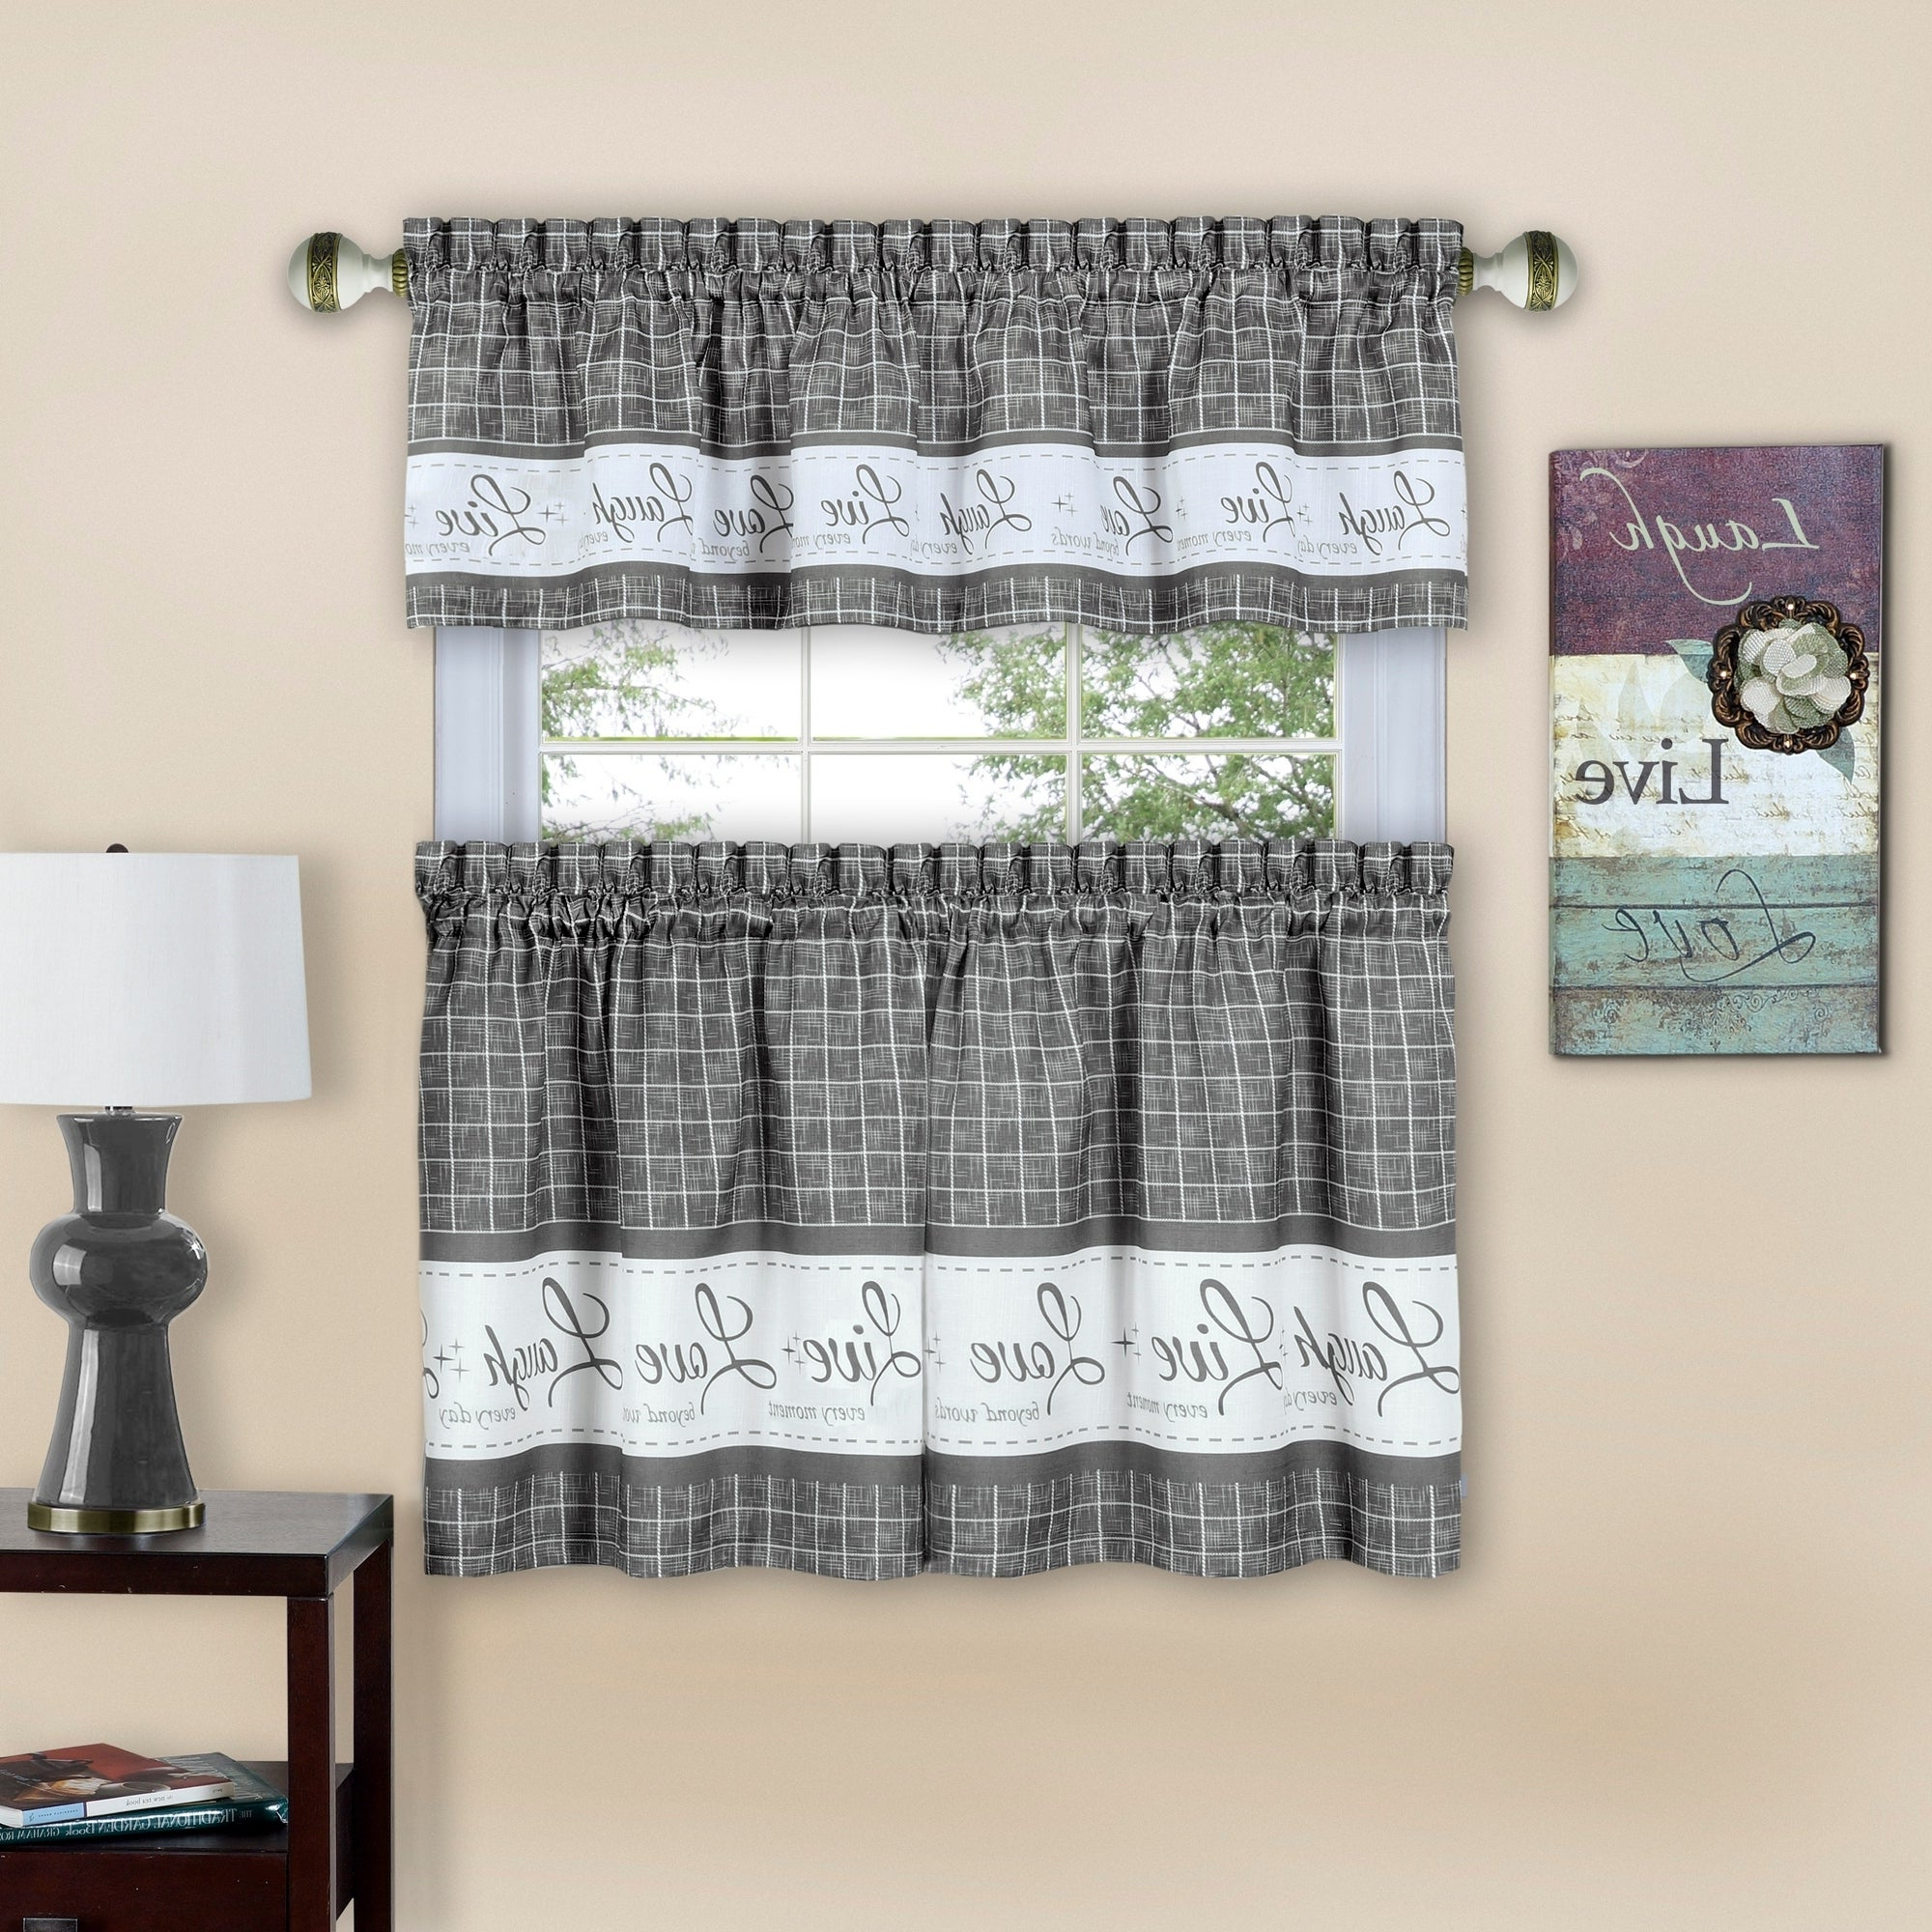 Barnyard Window Curtain Tier Pair And Valance Sets With Regard To Well Known Live, Love, Laugh Window Curtain Tier Pair And Valance Set (View 5 of 20)